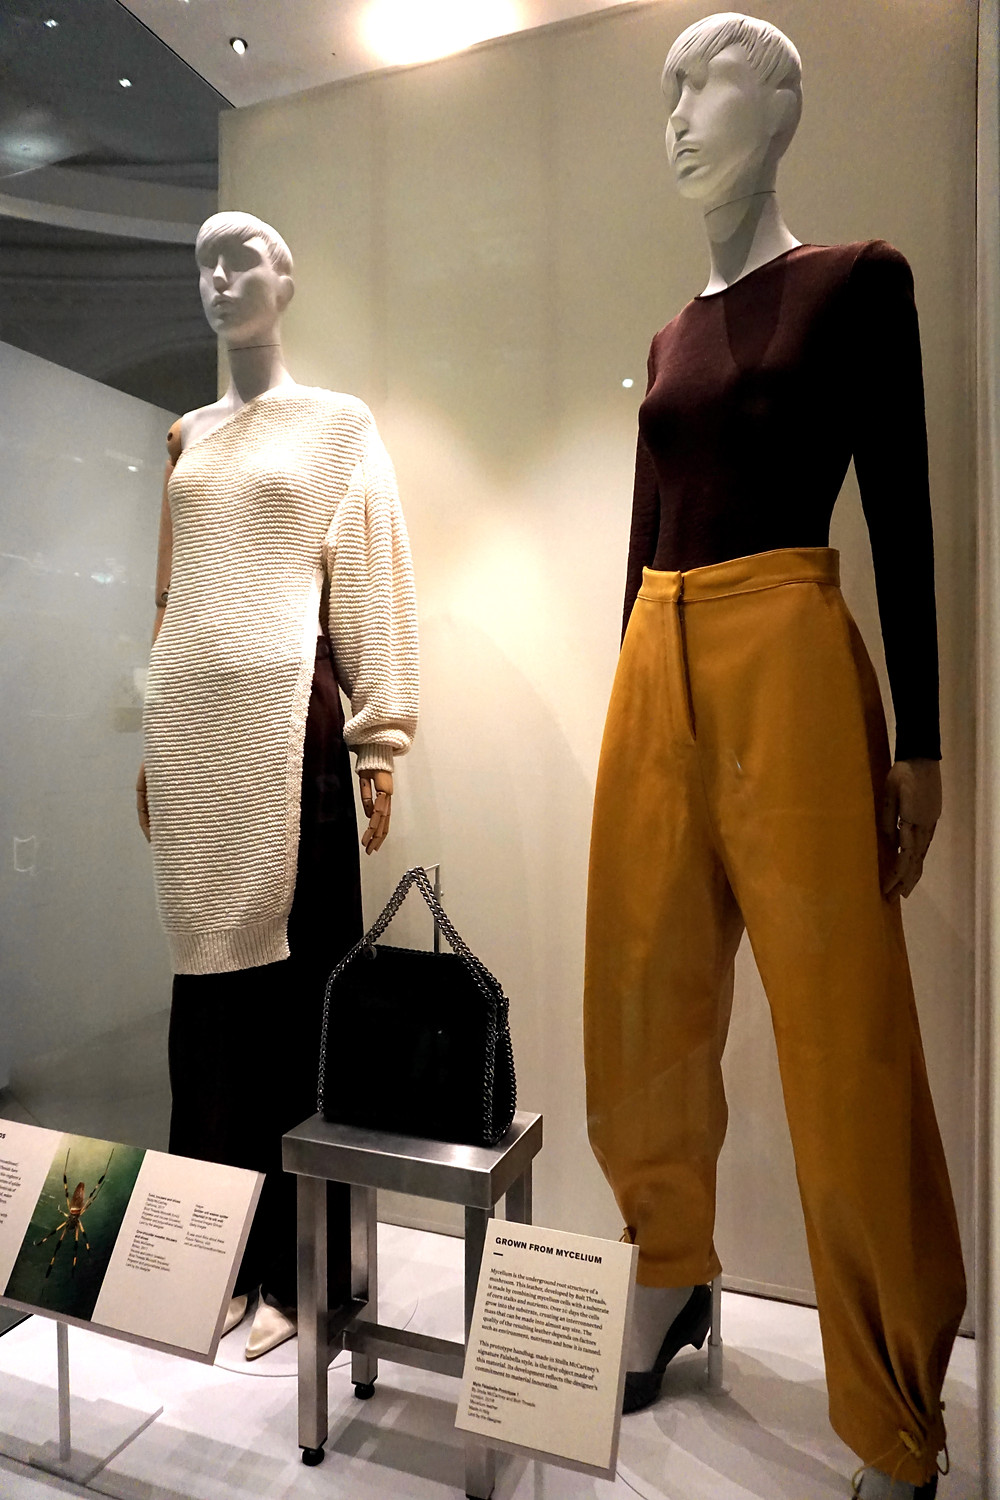 Outfits made of Microsilk and bag made of Mylo by Stella McCartney in collaboration with Bolt Threads, 2017